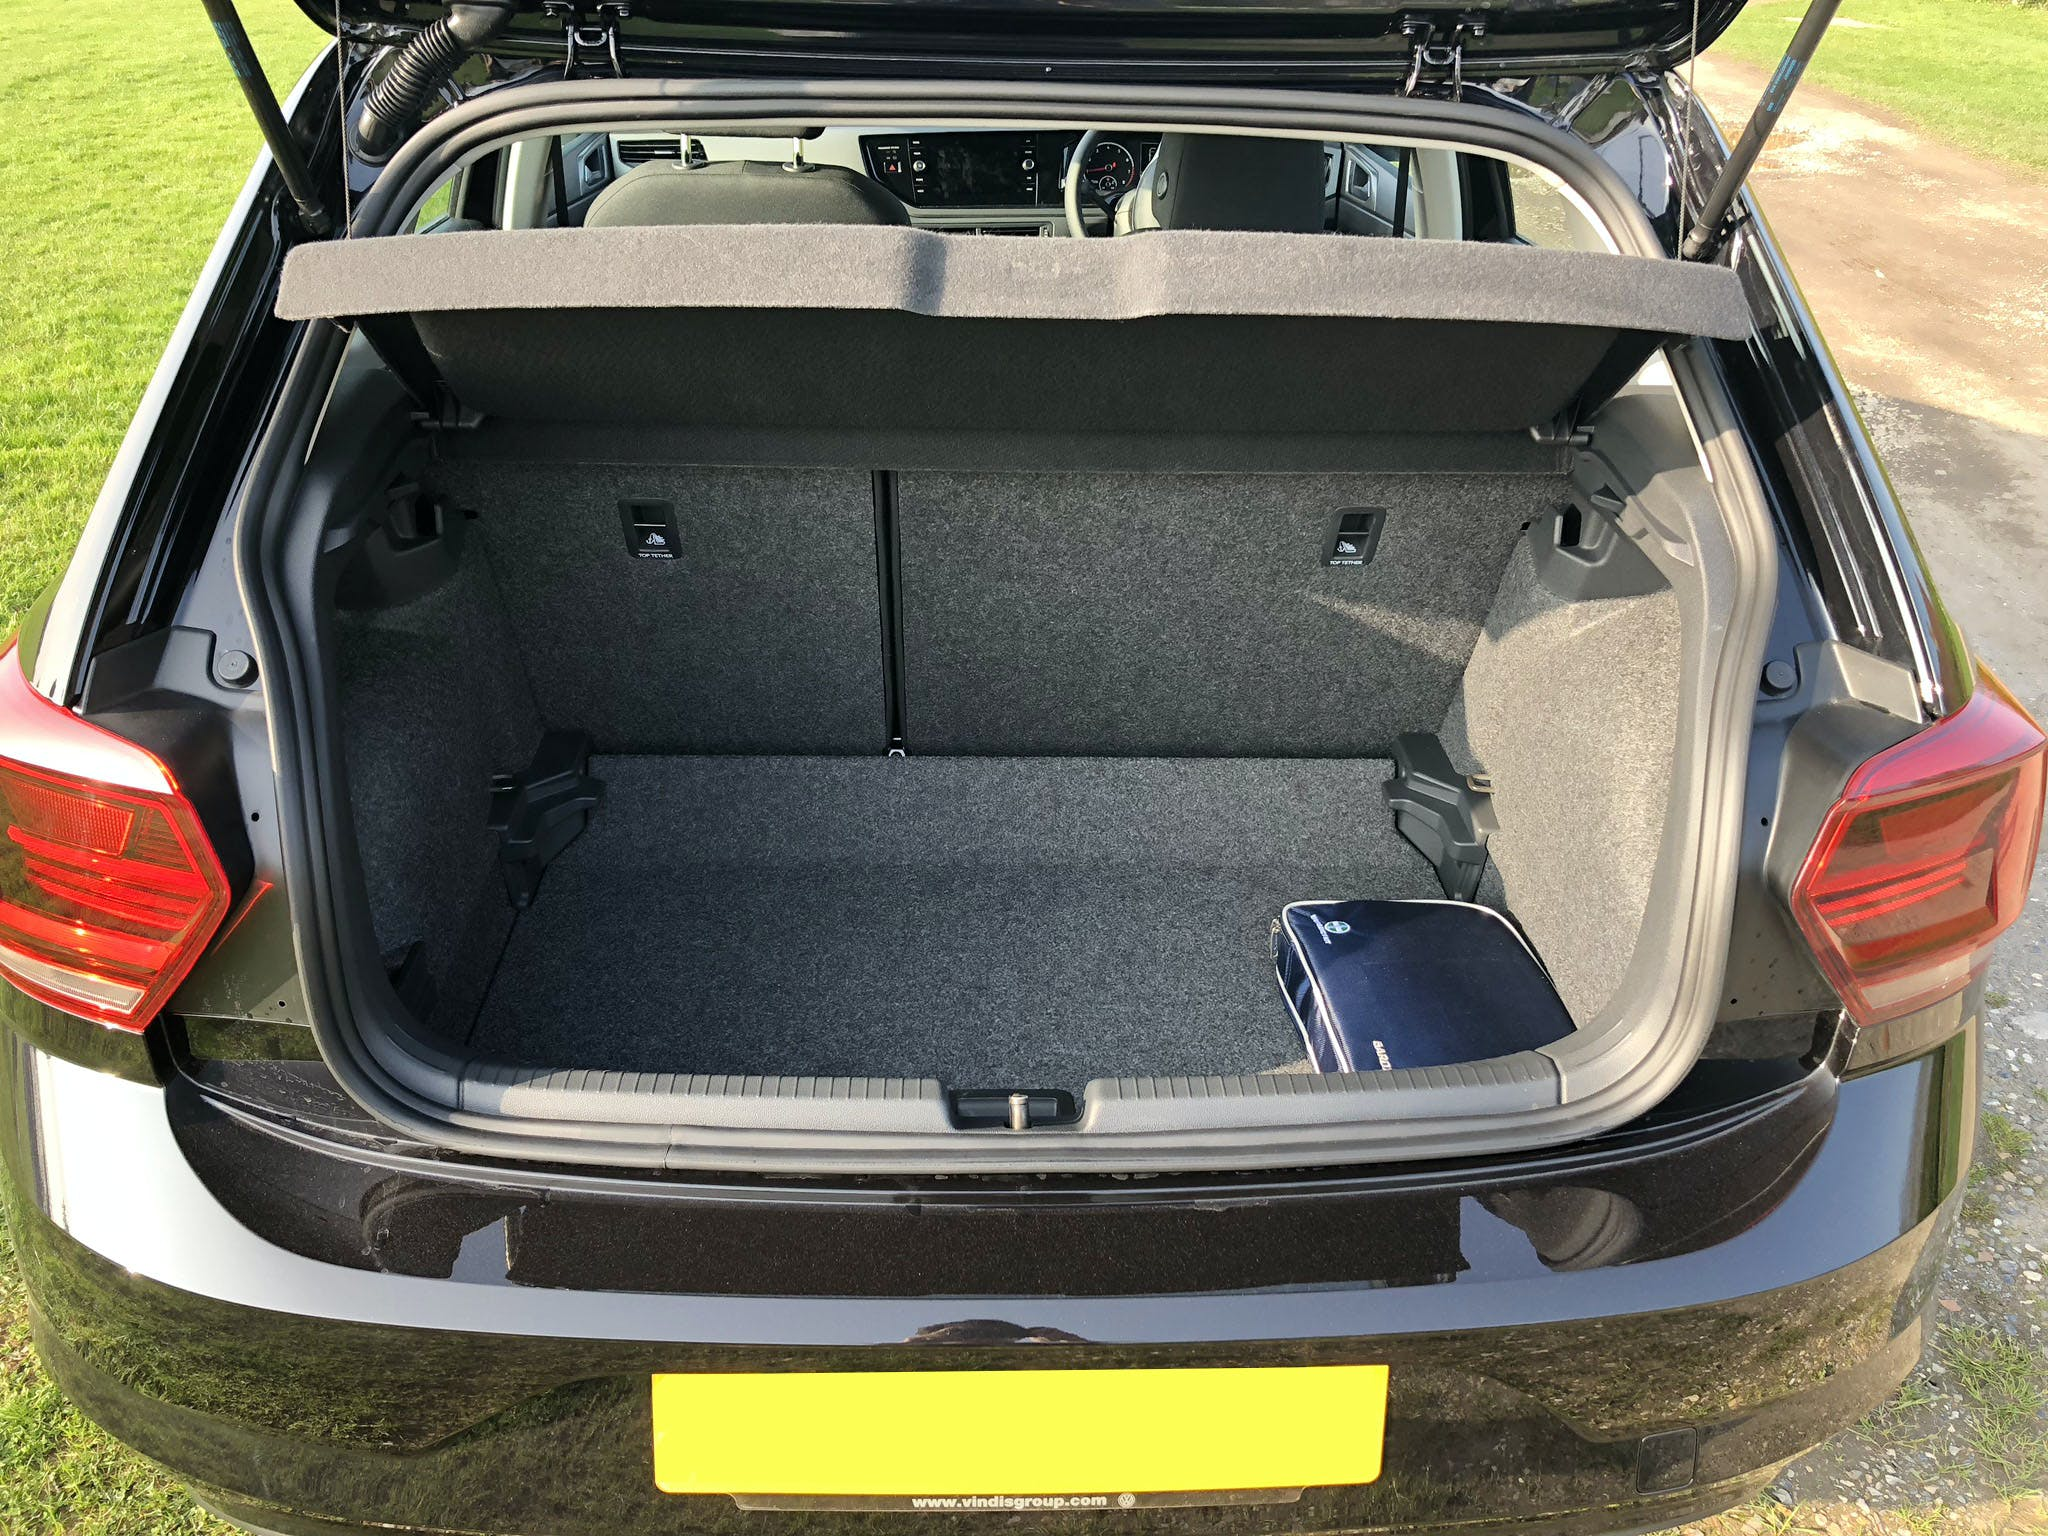 Volkswagen Polo with Air conditioning